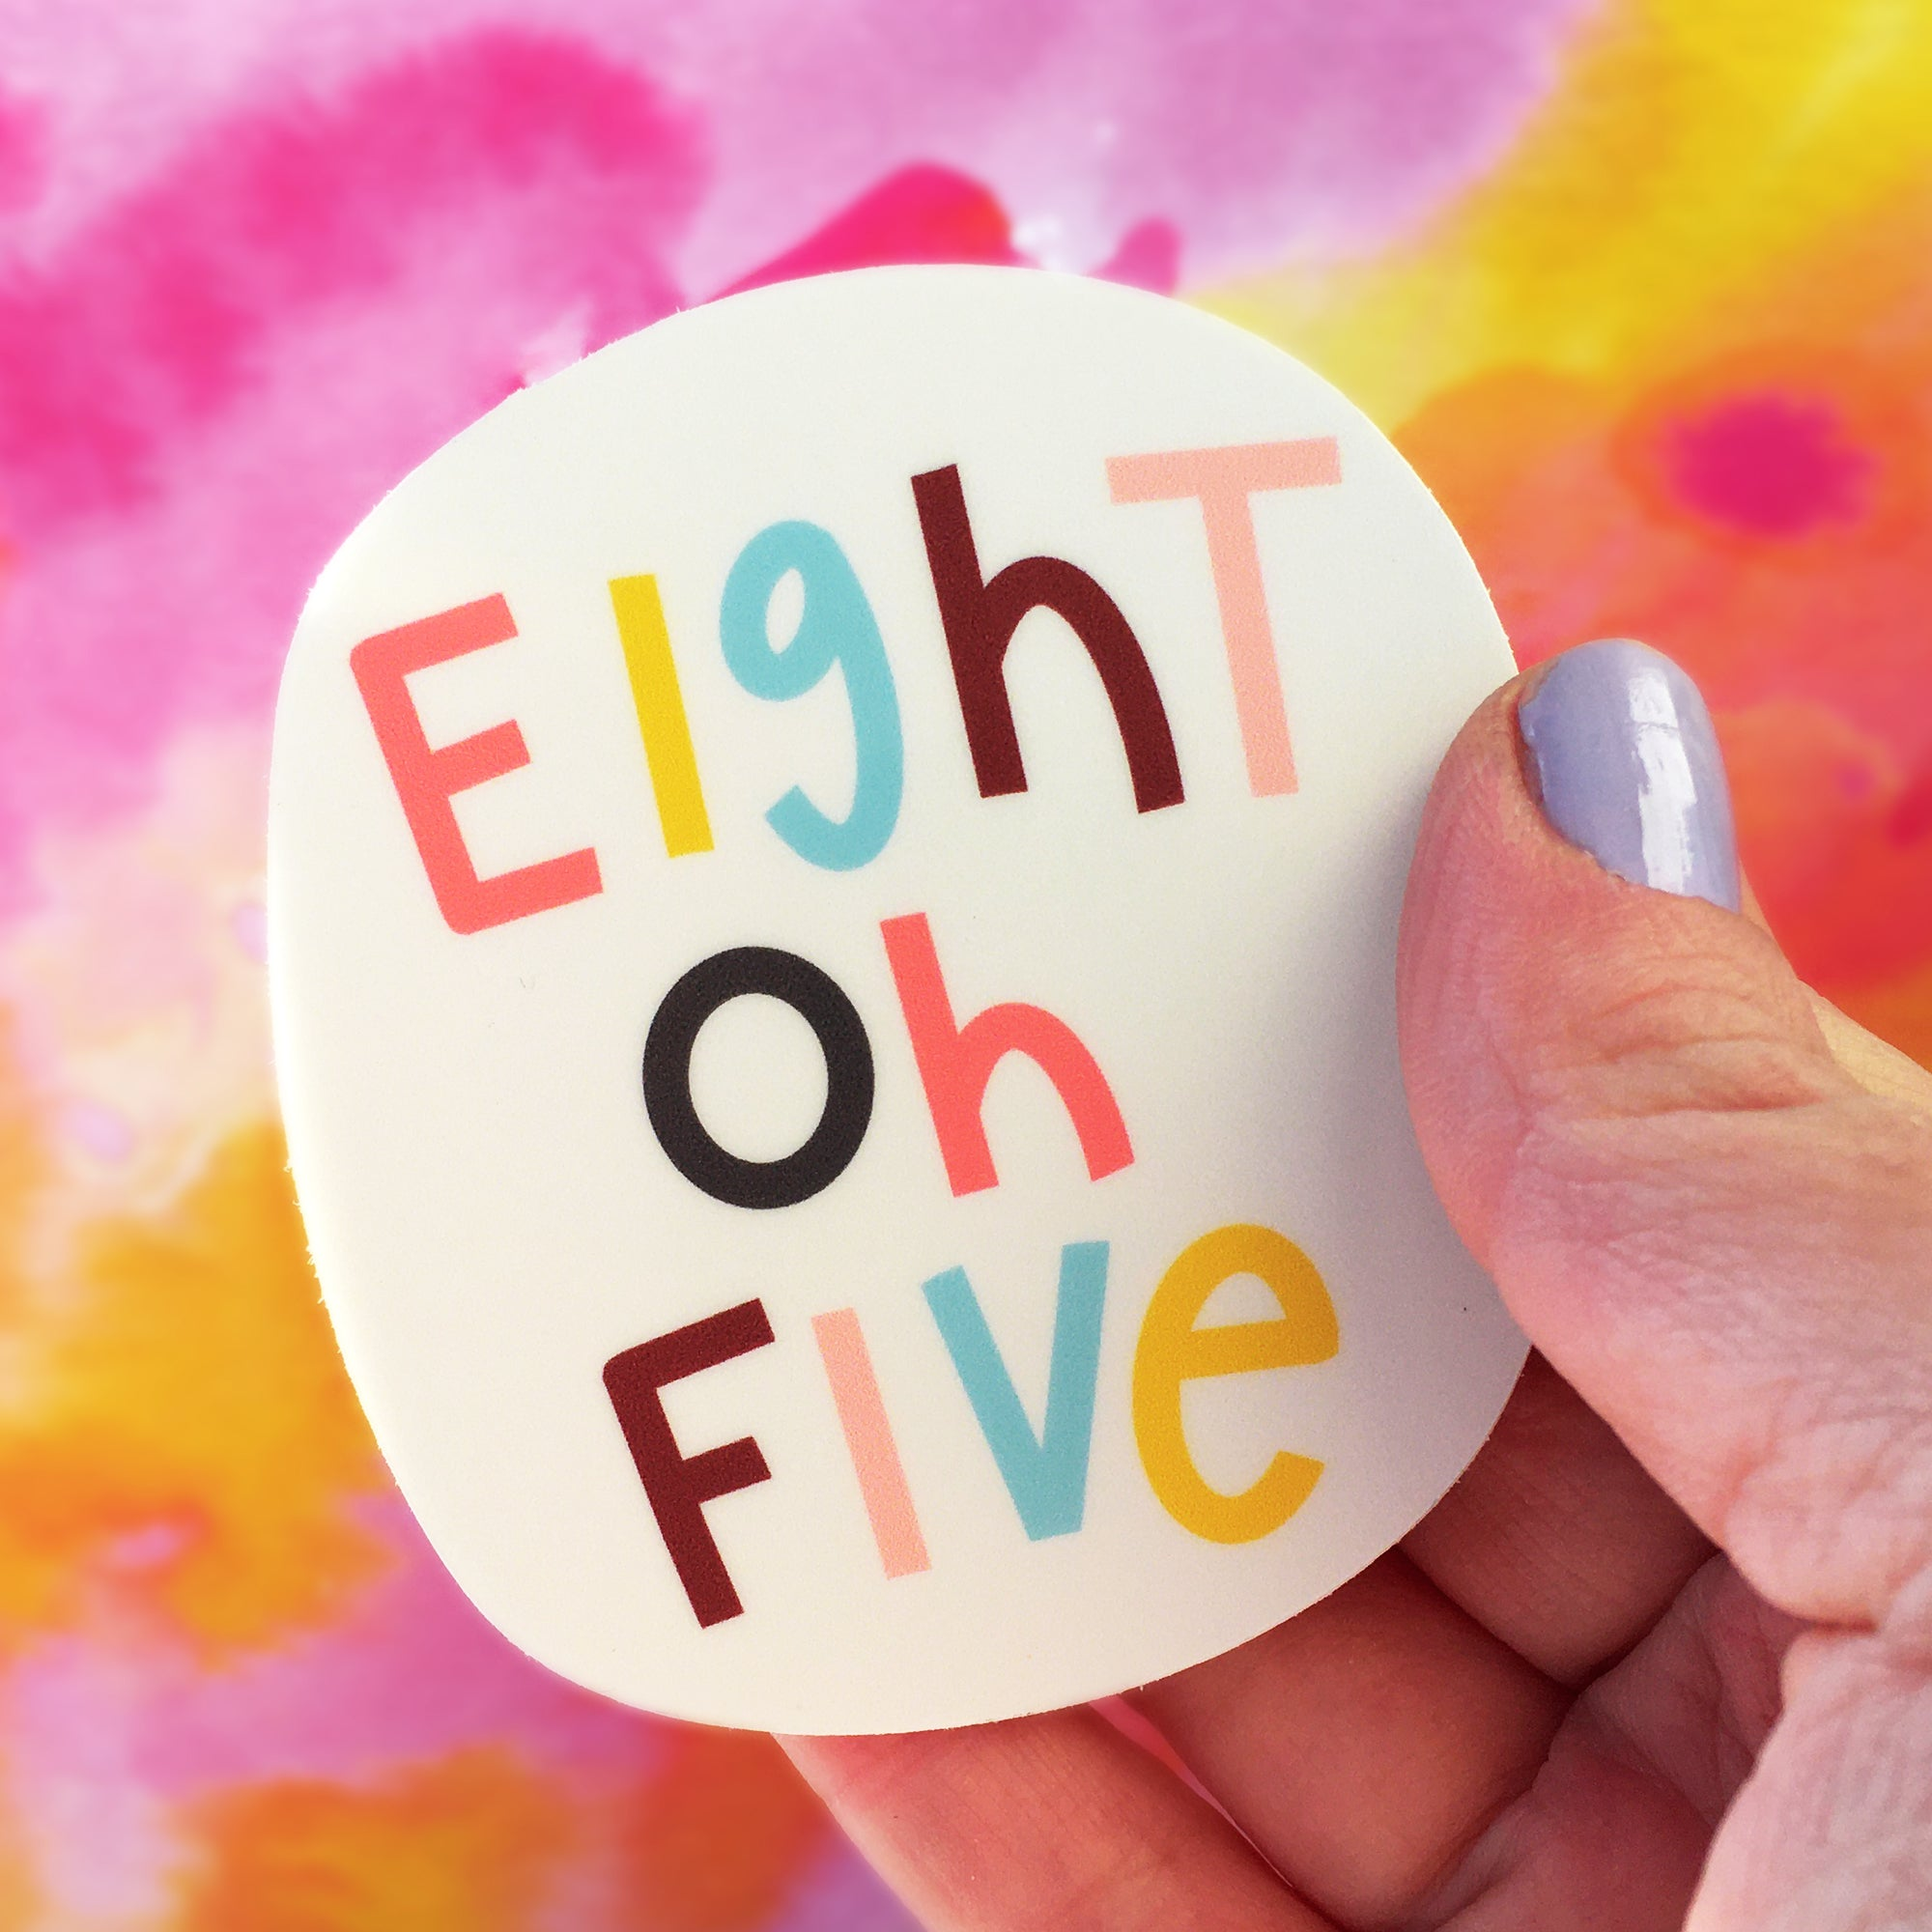 Eight Oh Five 805 Sticker